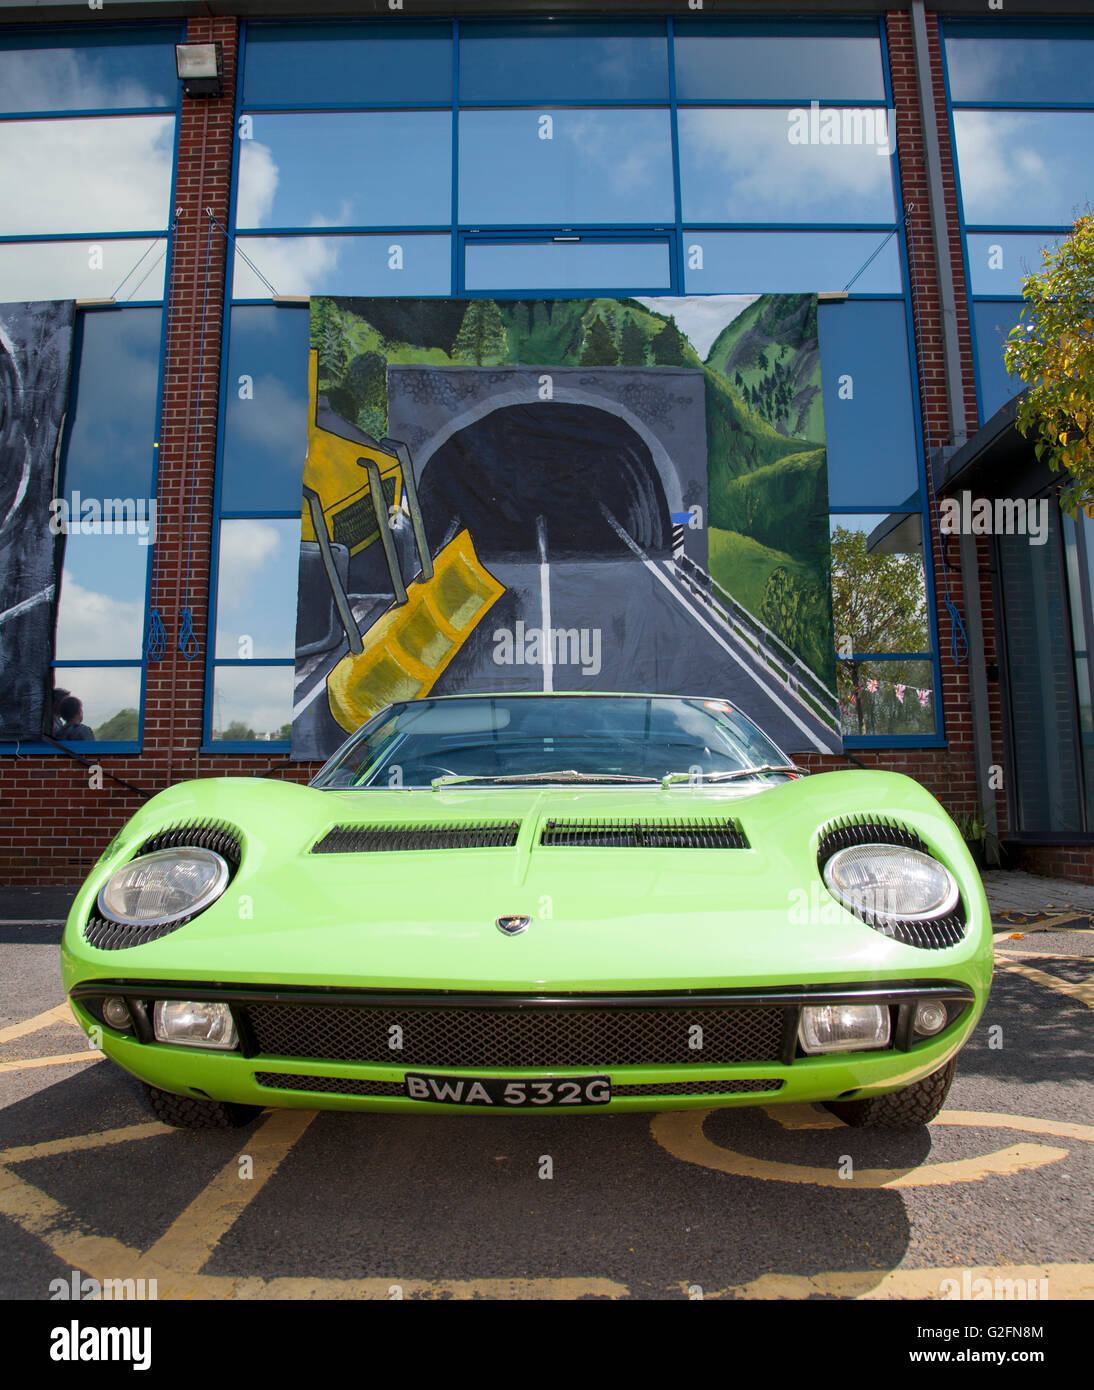 Lamborghini Miura, sports car at the Pendle Power Fest, a classic, veteran and heritage motor show held at the Nelson - Stock Image